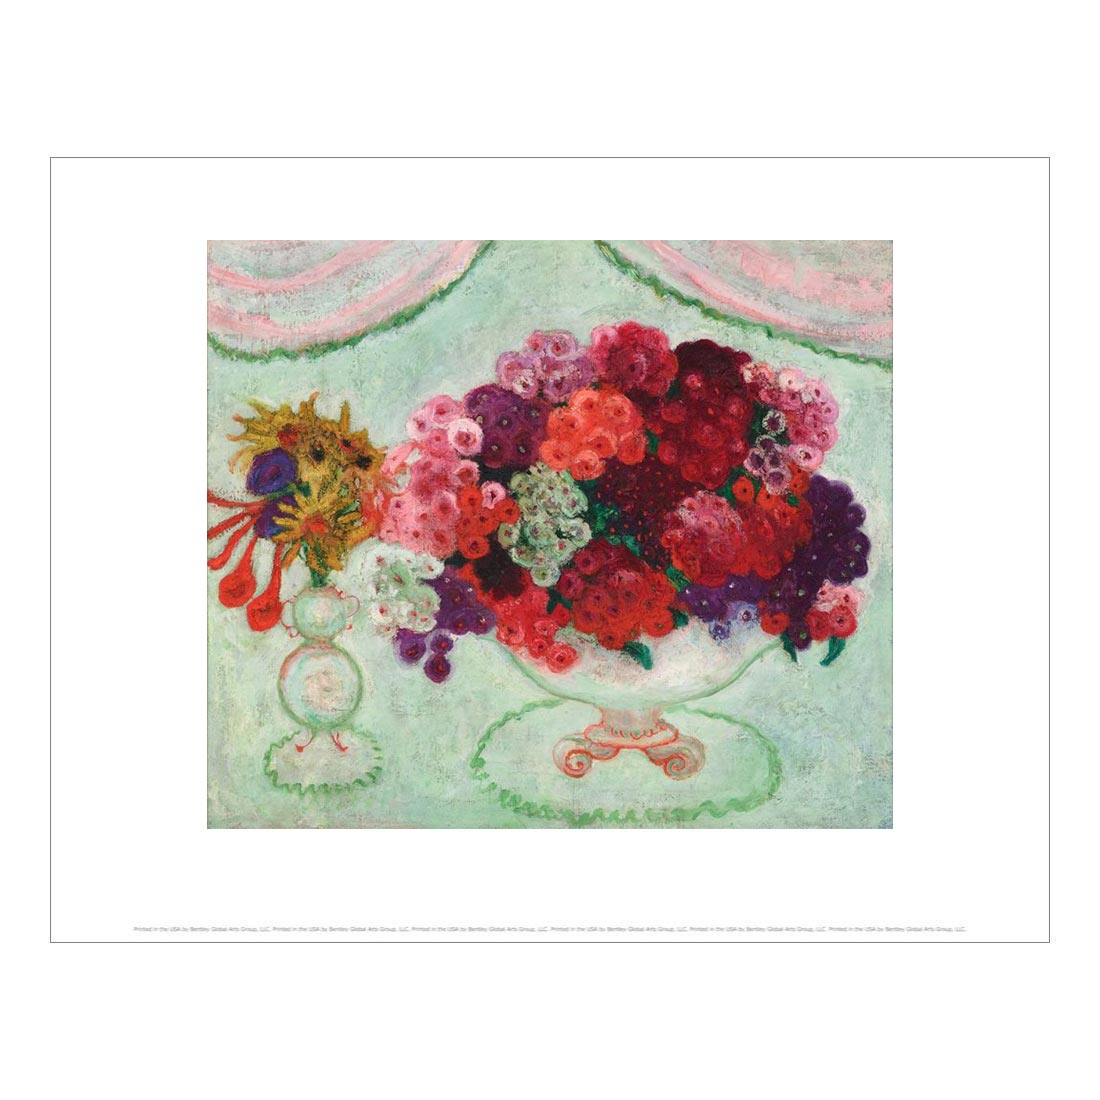 Still life with Flowers Print